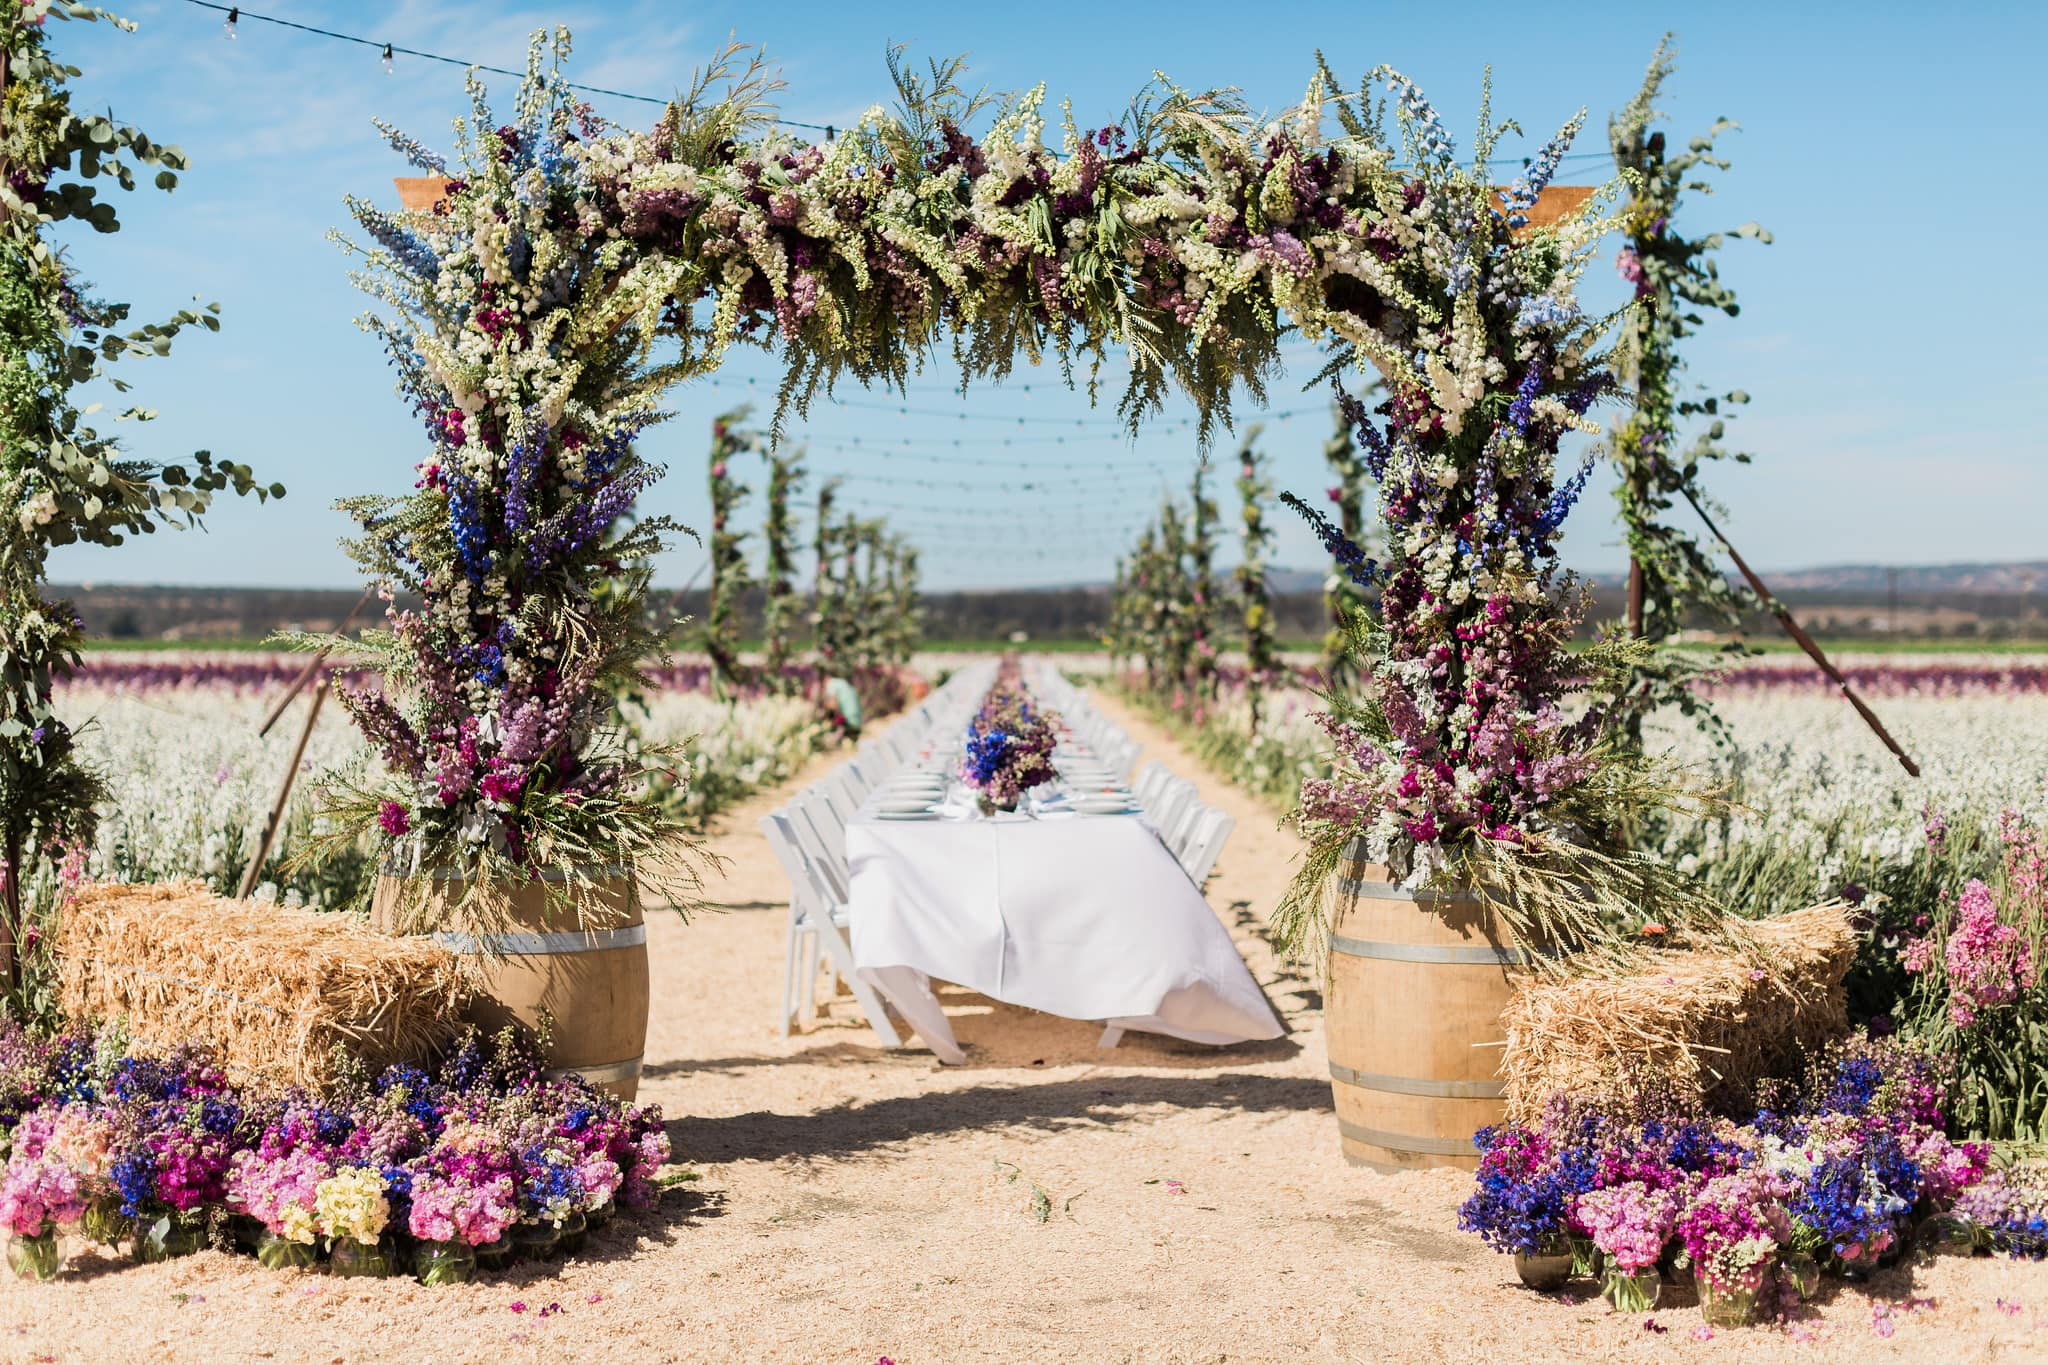 Long dinner table in stock field with arch of flowers at the beginning.